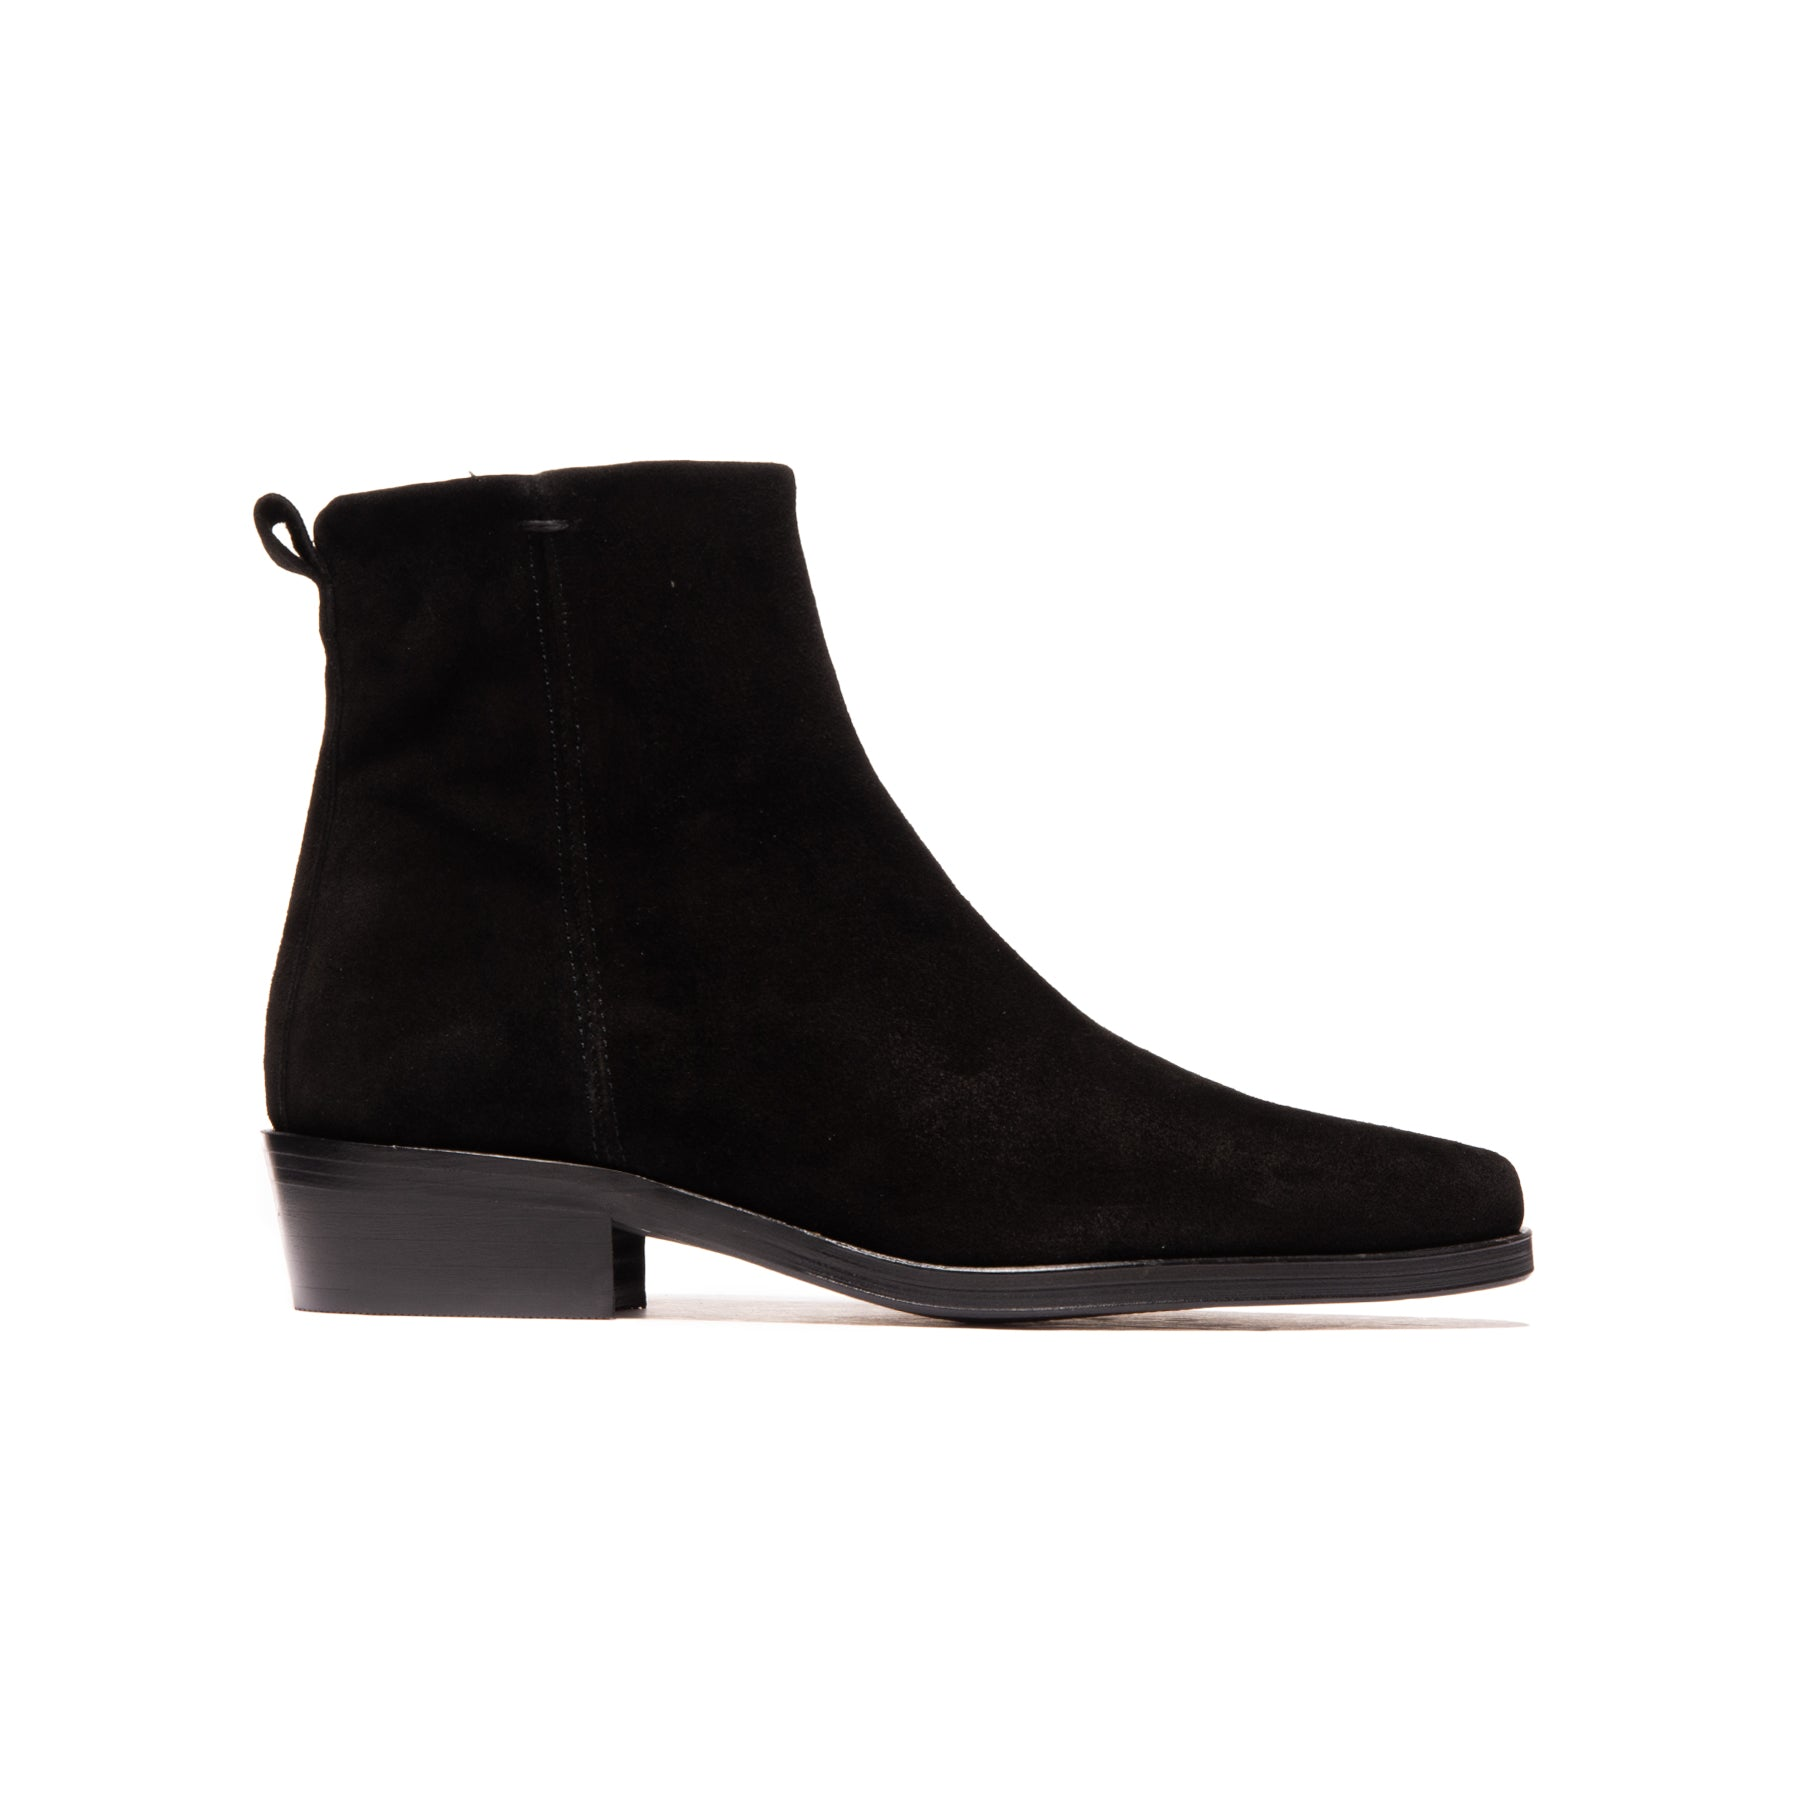 Givili Black Suede